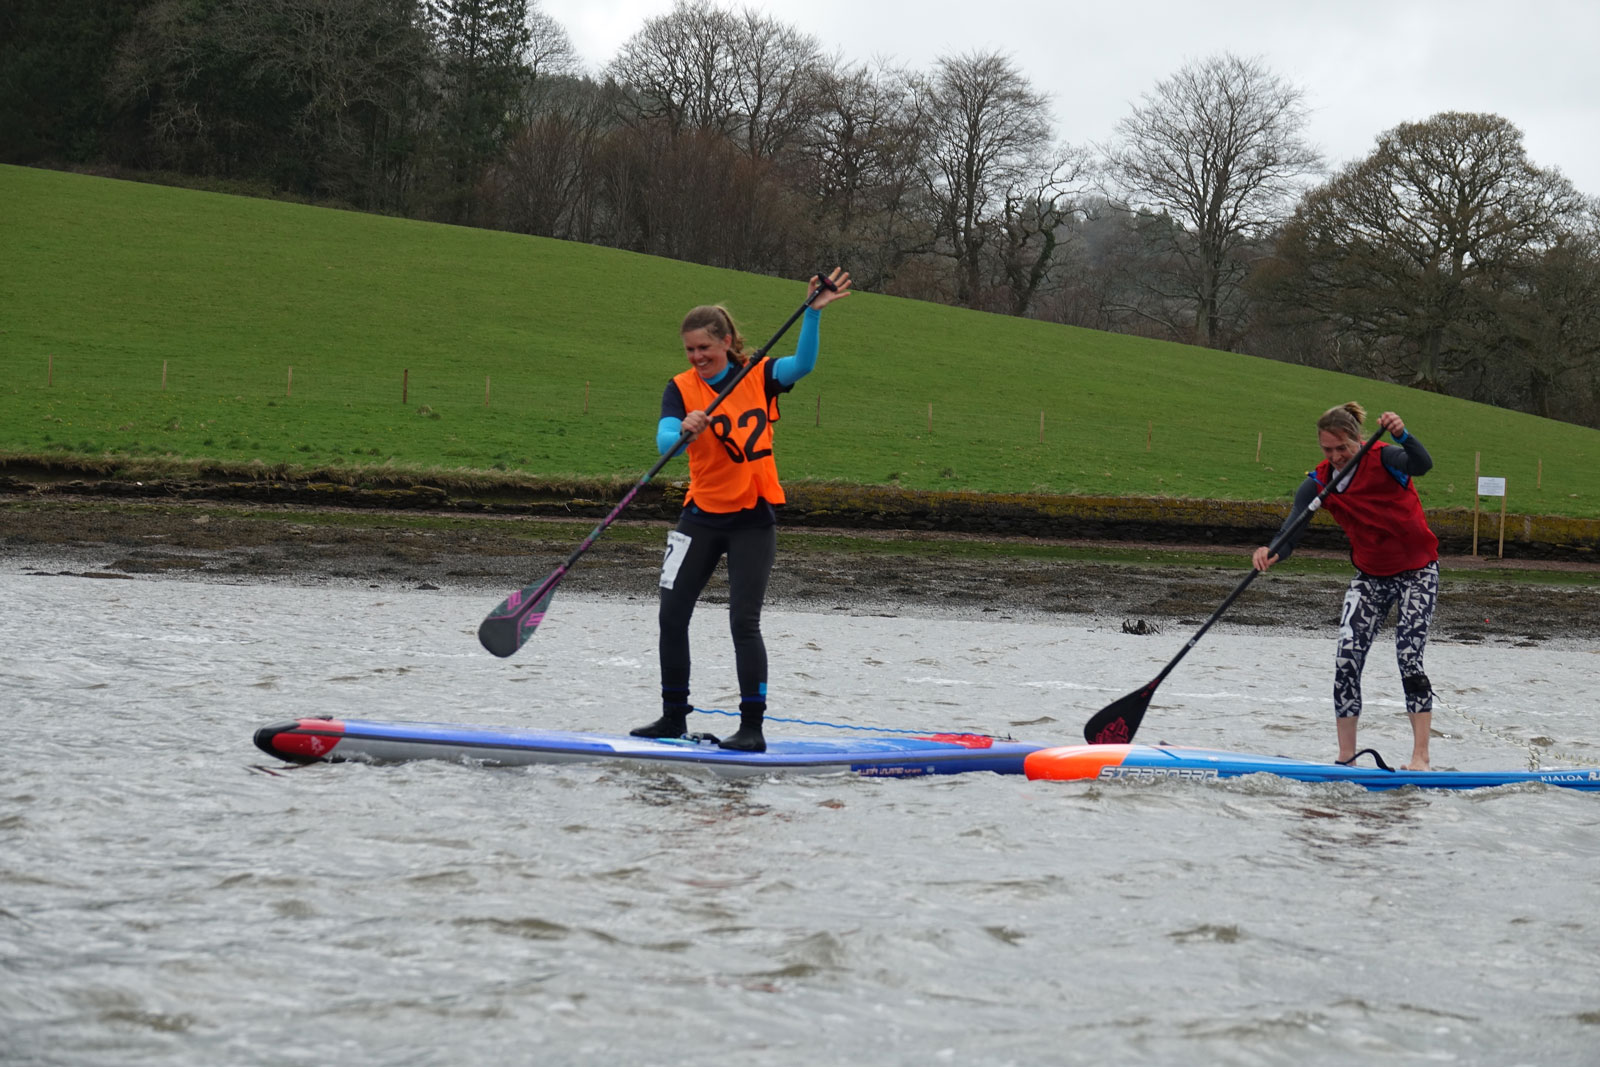 starboard-sup-Head-of-the-Dart-SUP-Challenge-2018-2